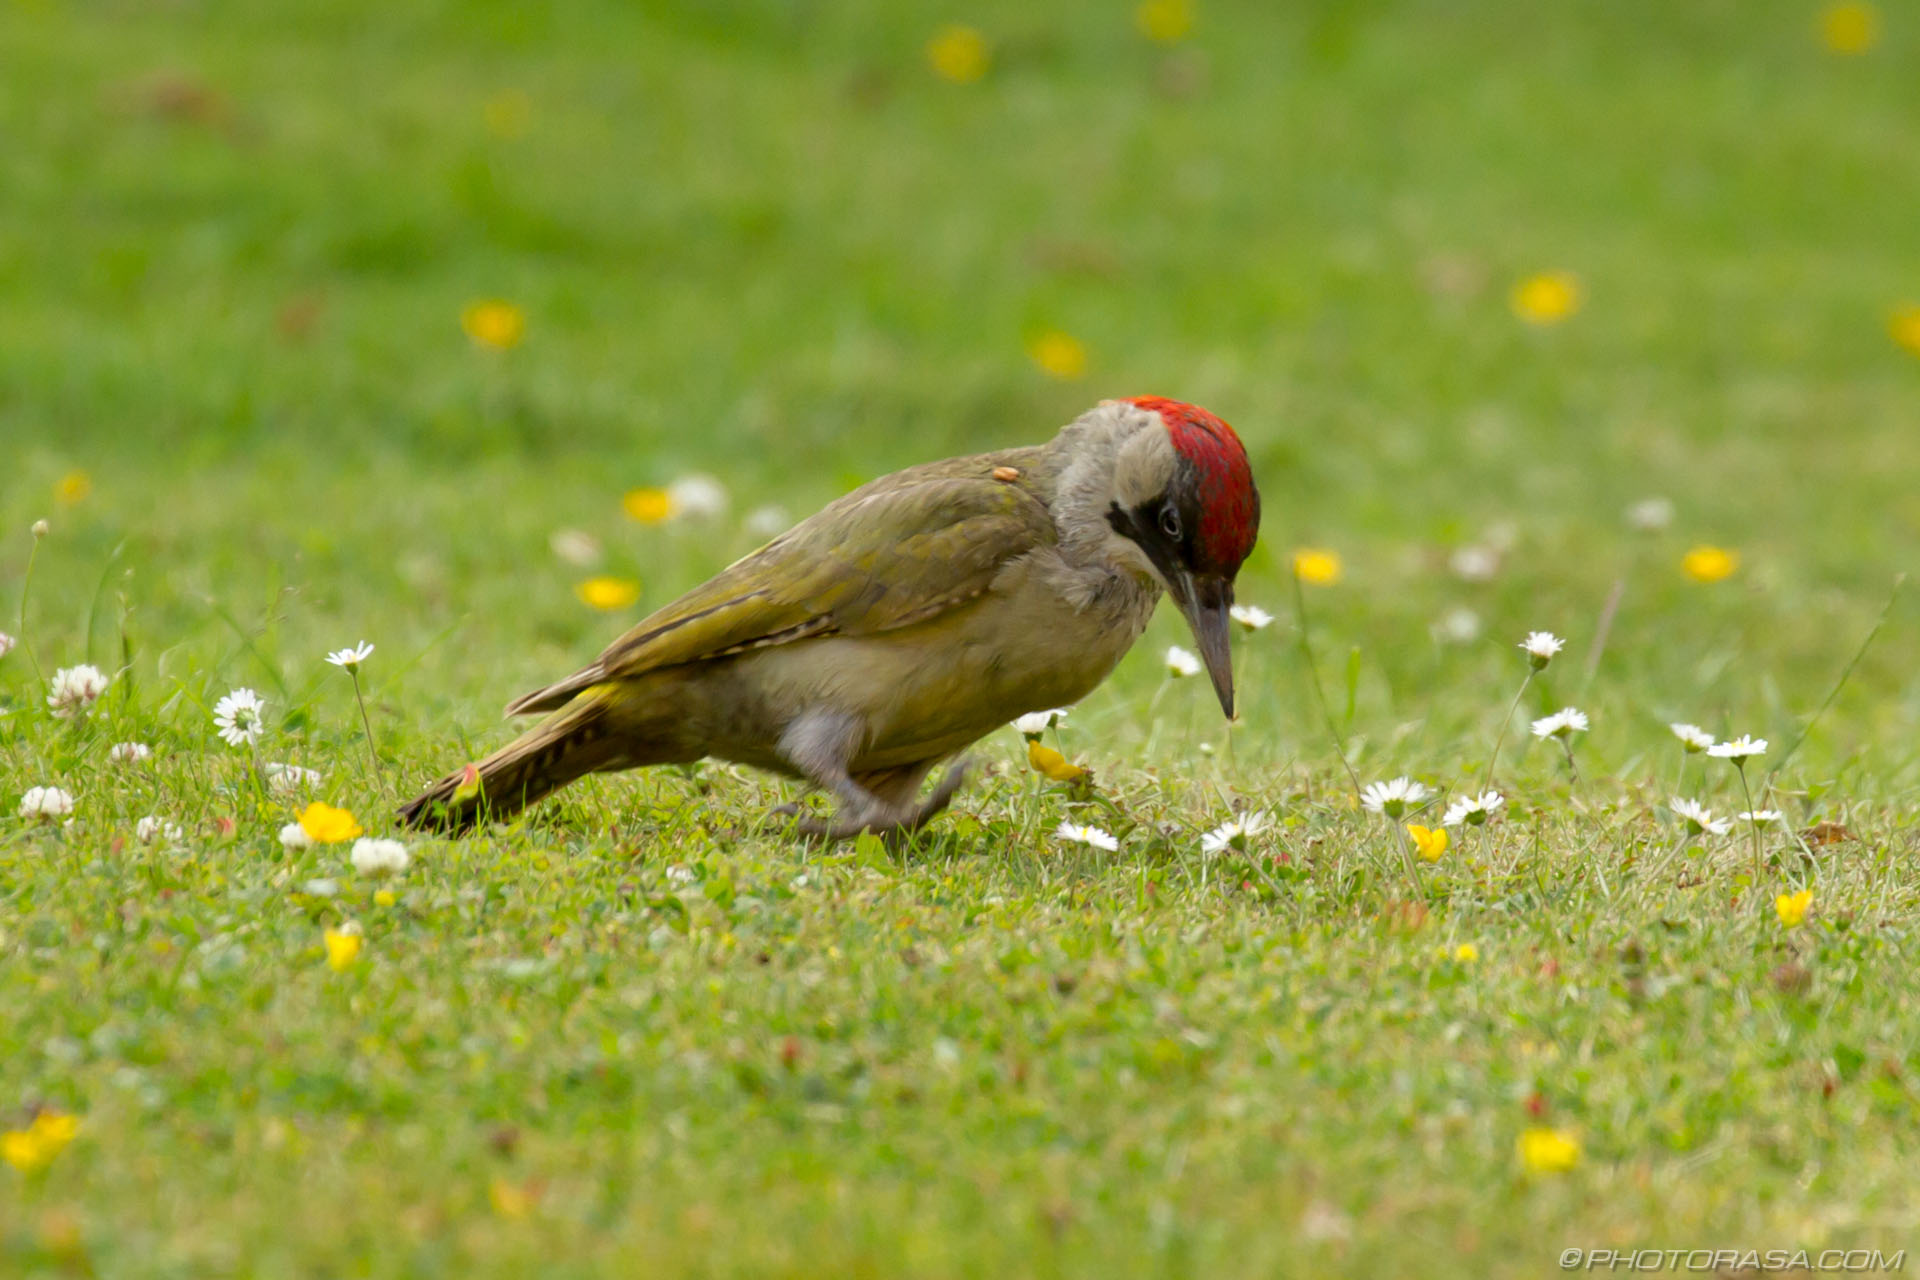 http://photorasa.com/green-woodpecker/looking-for-food/